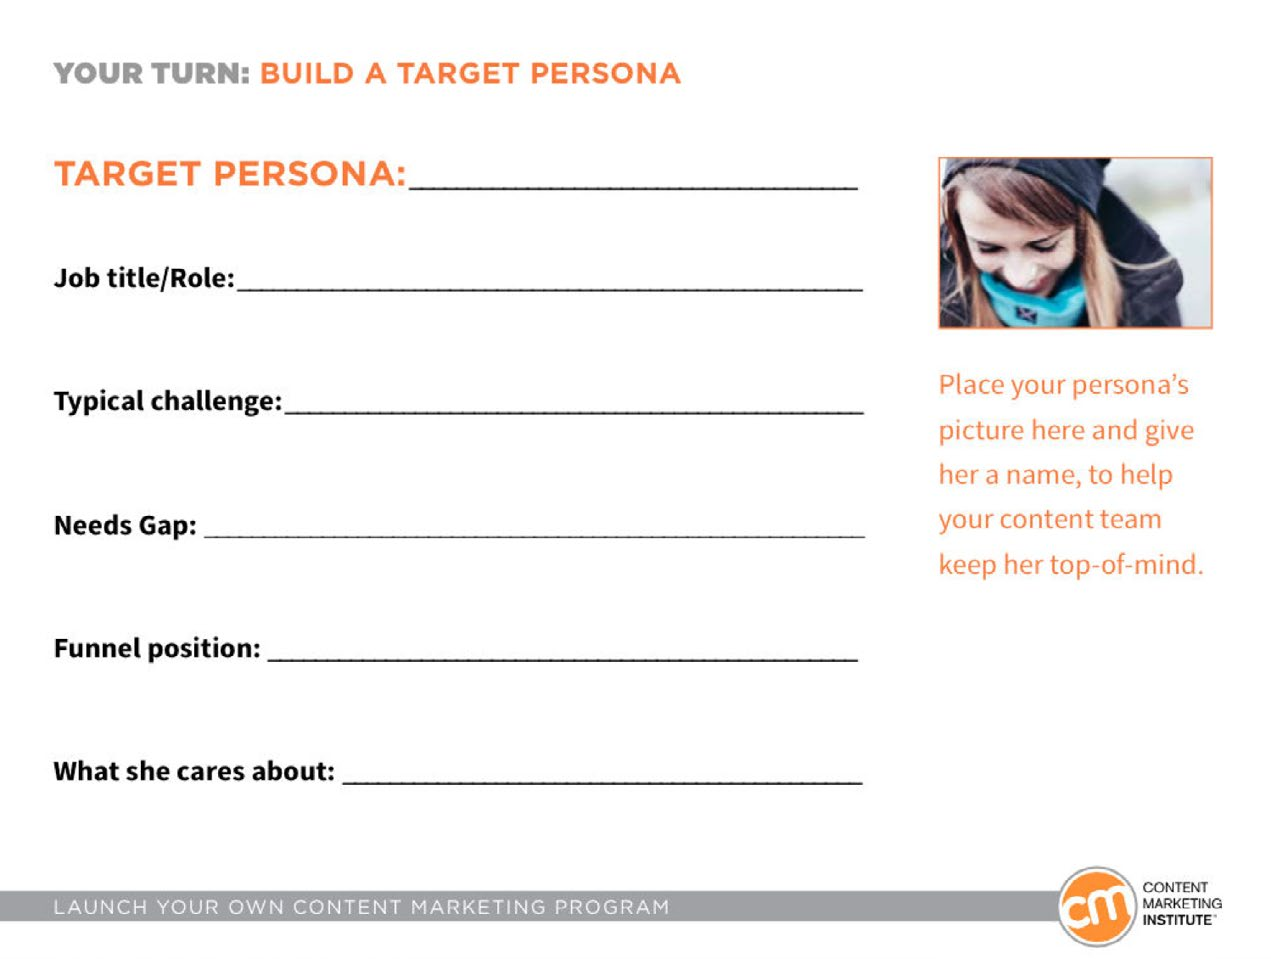 Img. 1 - Customer persona template from Content Marketing Institute.